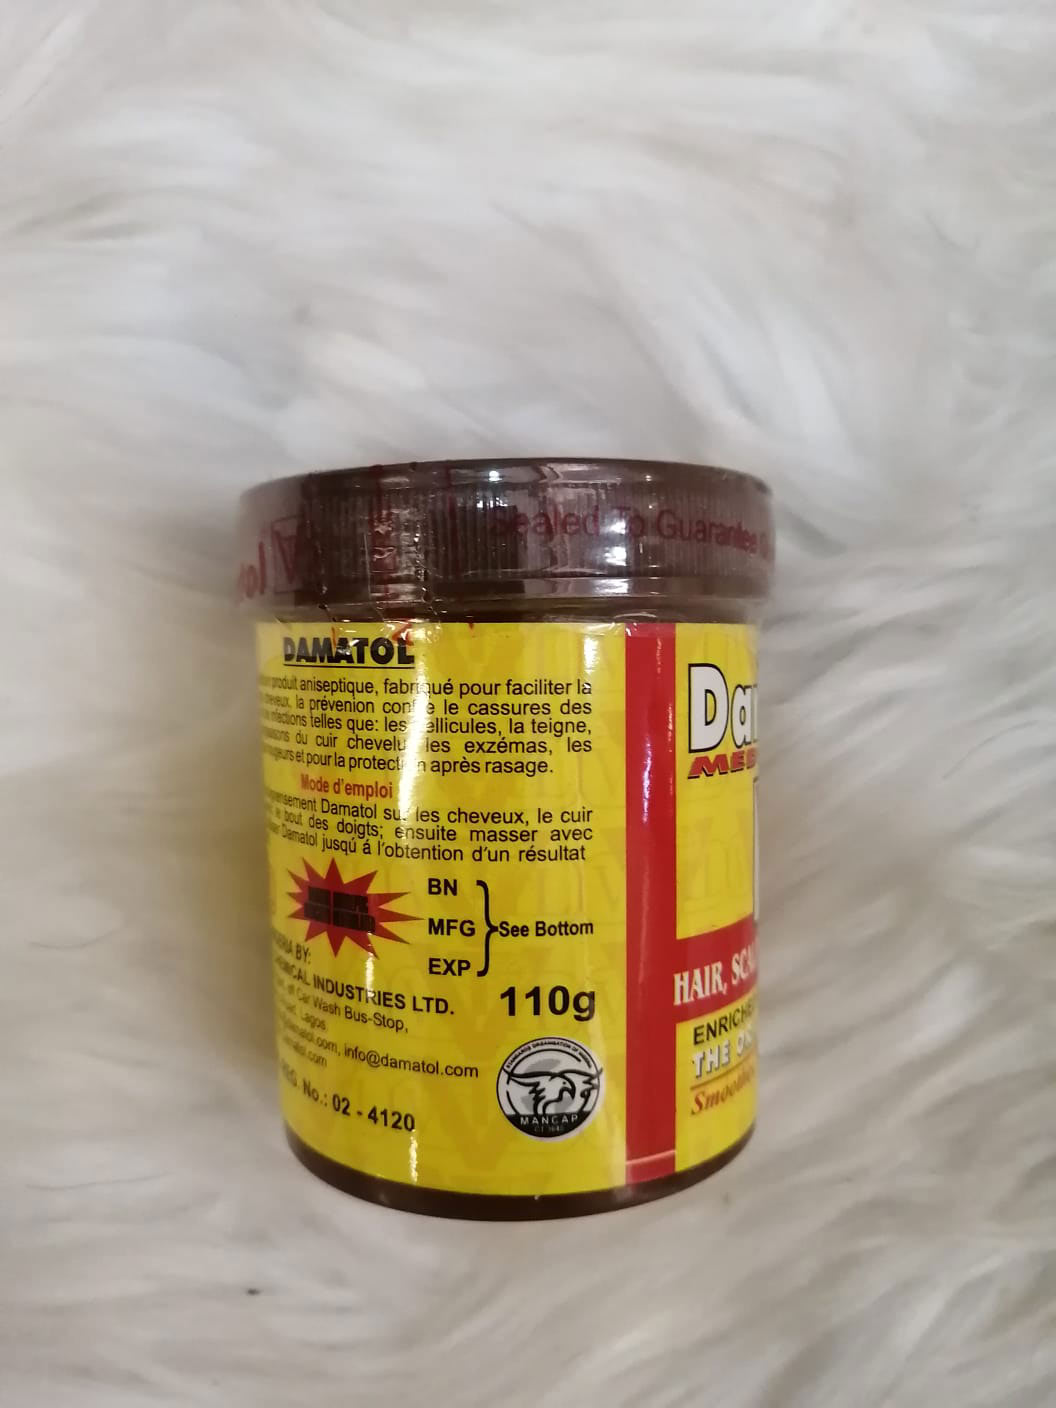 Damatol hair product